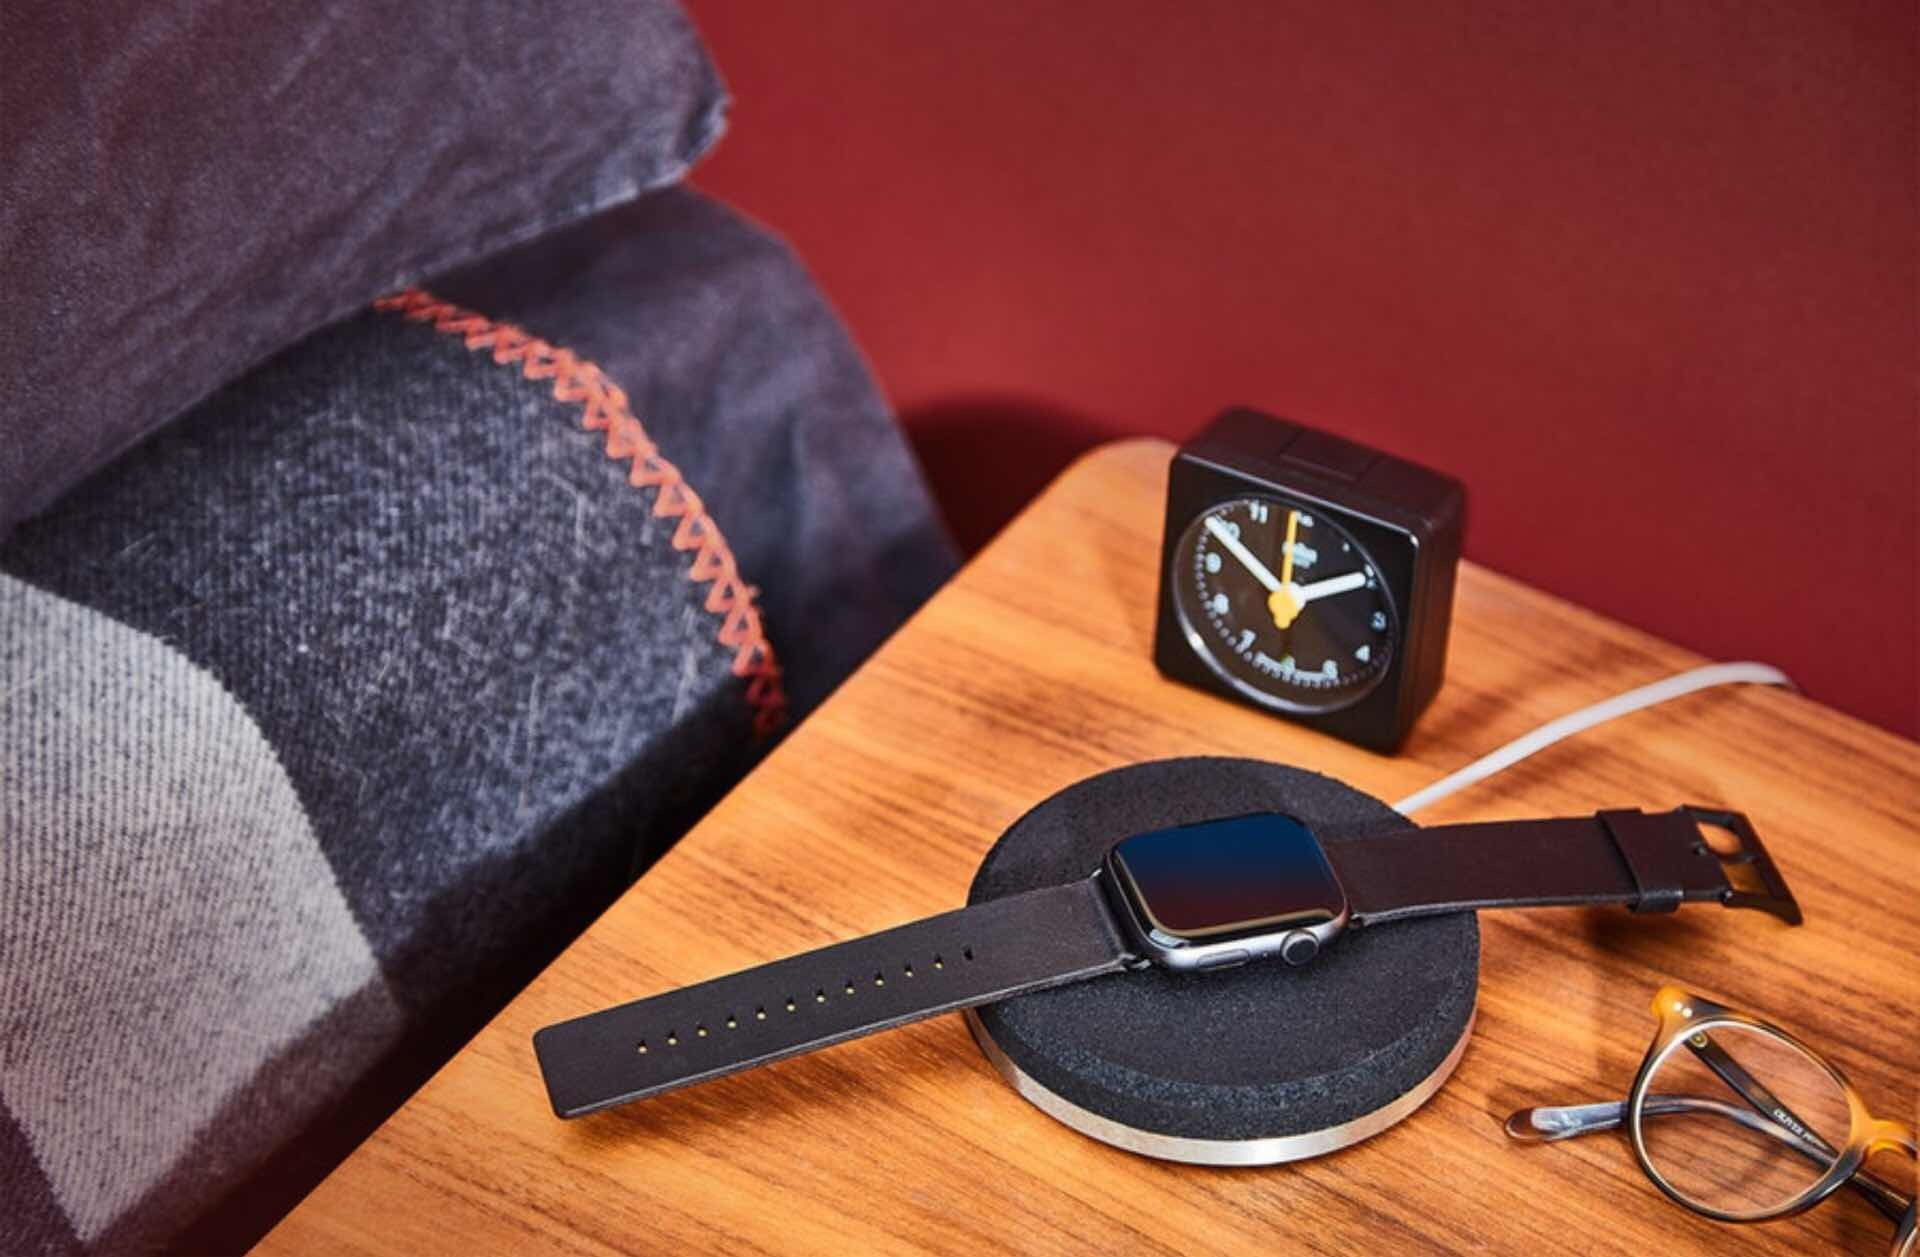 grovemade-apple-watch-dock-dark